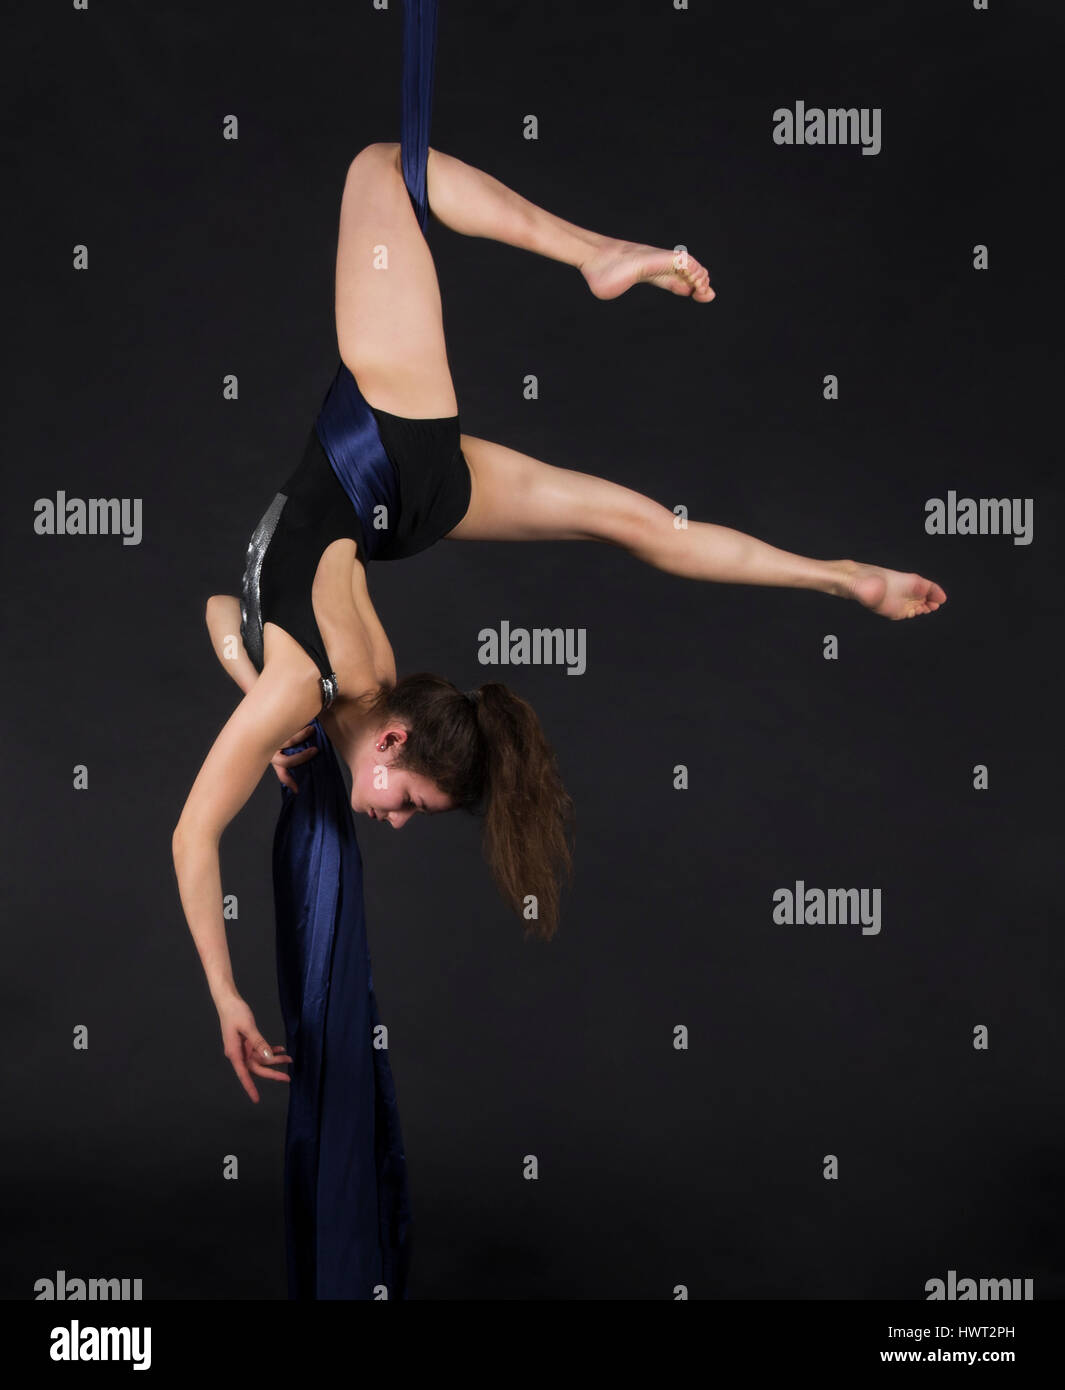 Young,smiling girl does exercises on the canvases. Studio recording of the performance on a dark background. - Stock Image